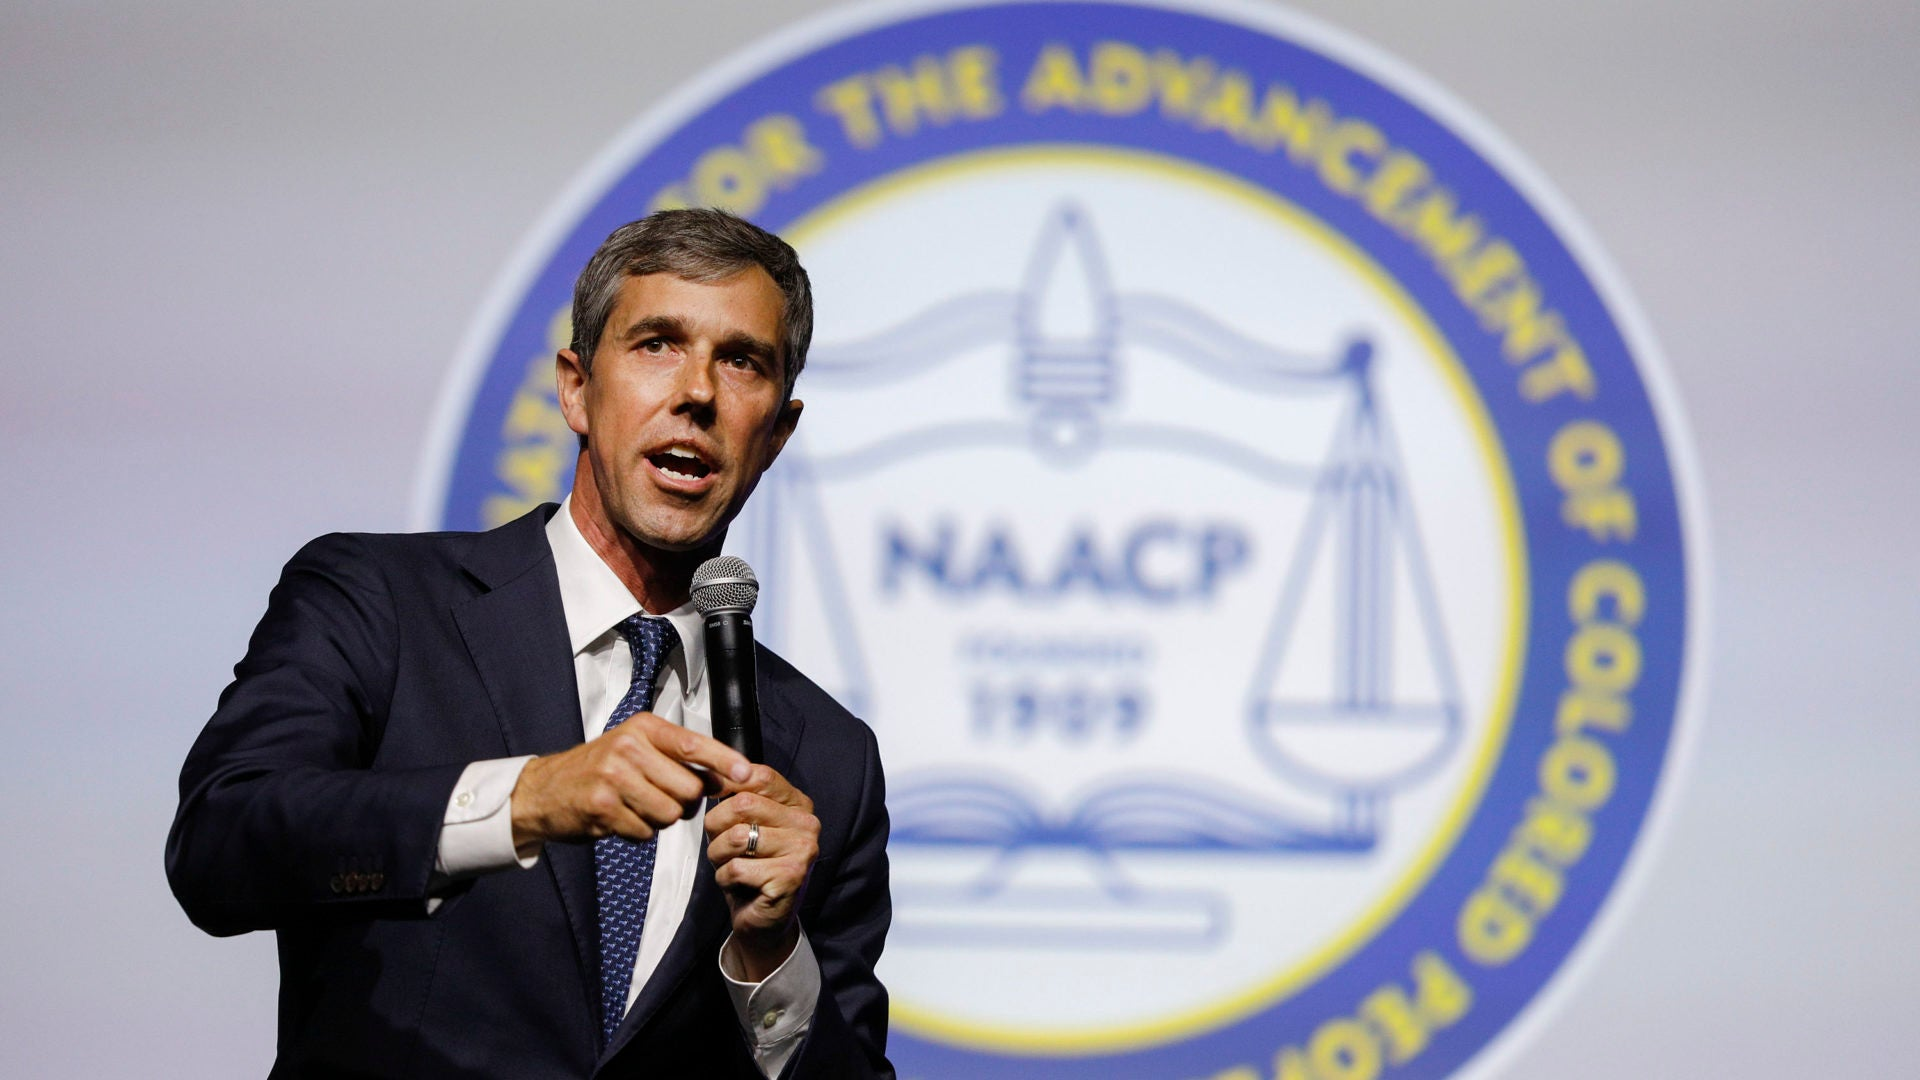 Beto O'Rourke Determined To End Trump Administration's 'Worst Practices'